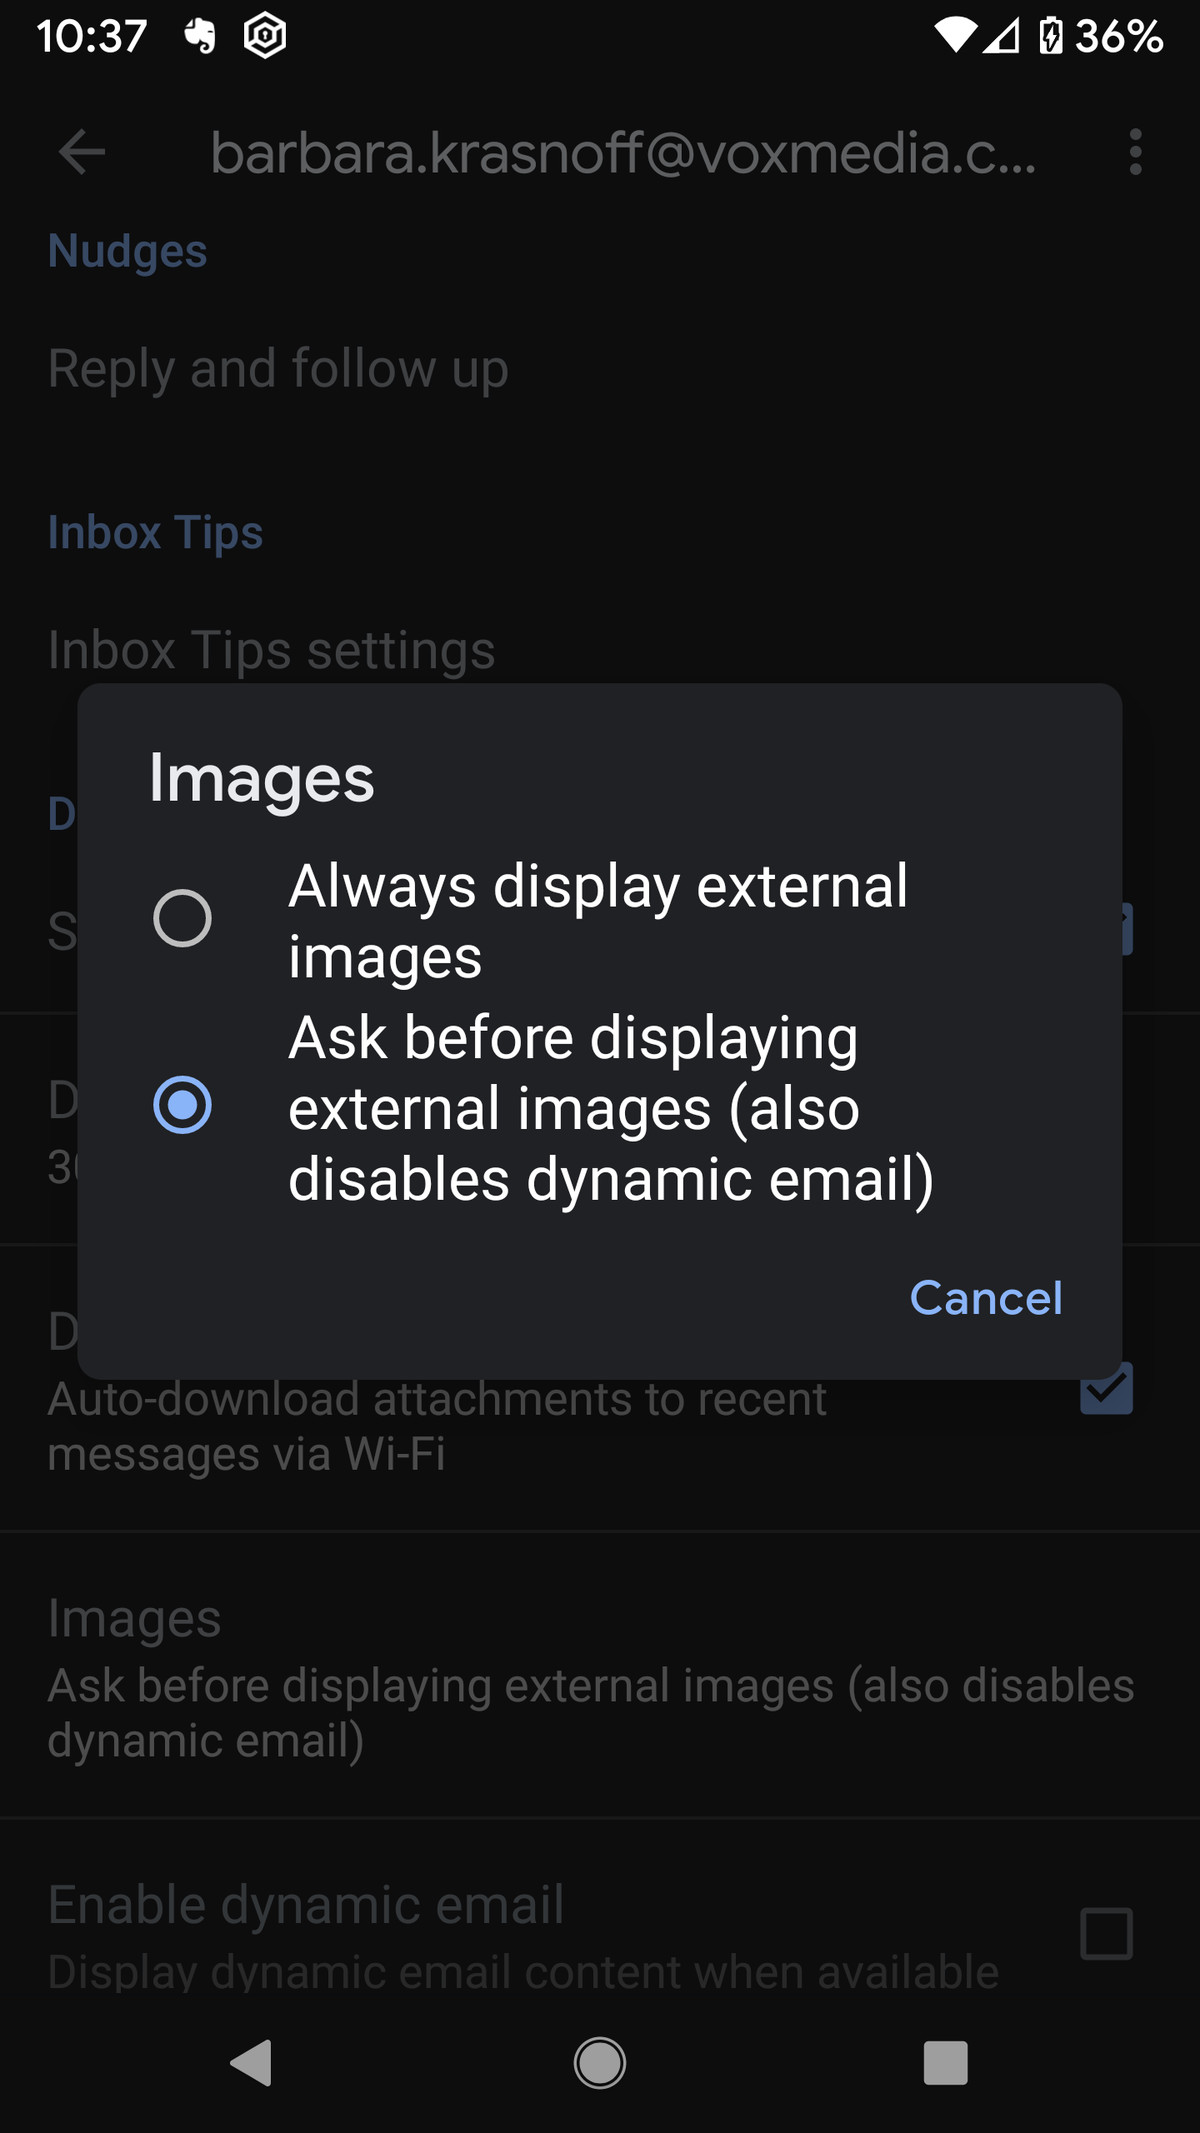 You can now disable the autoloading of images.